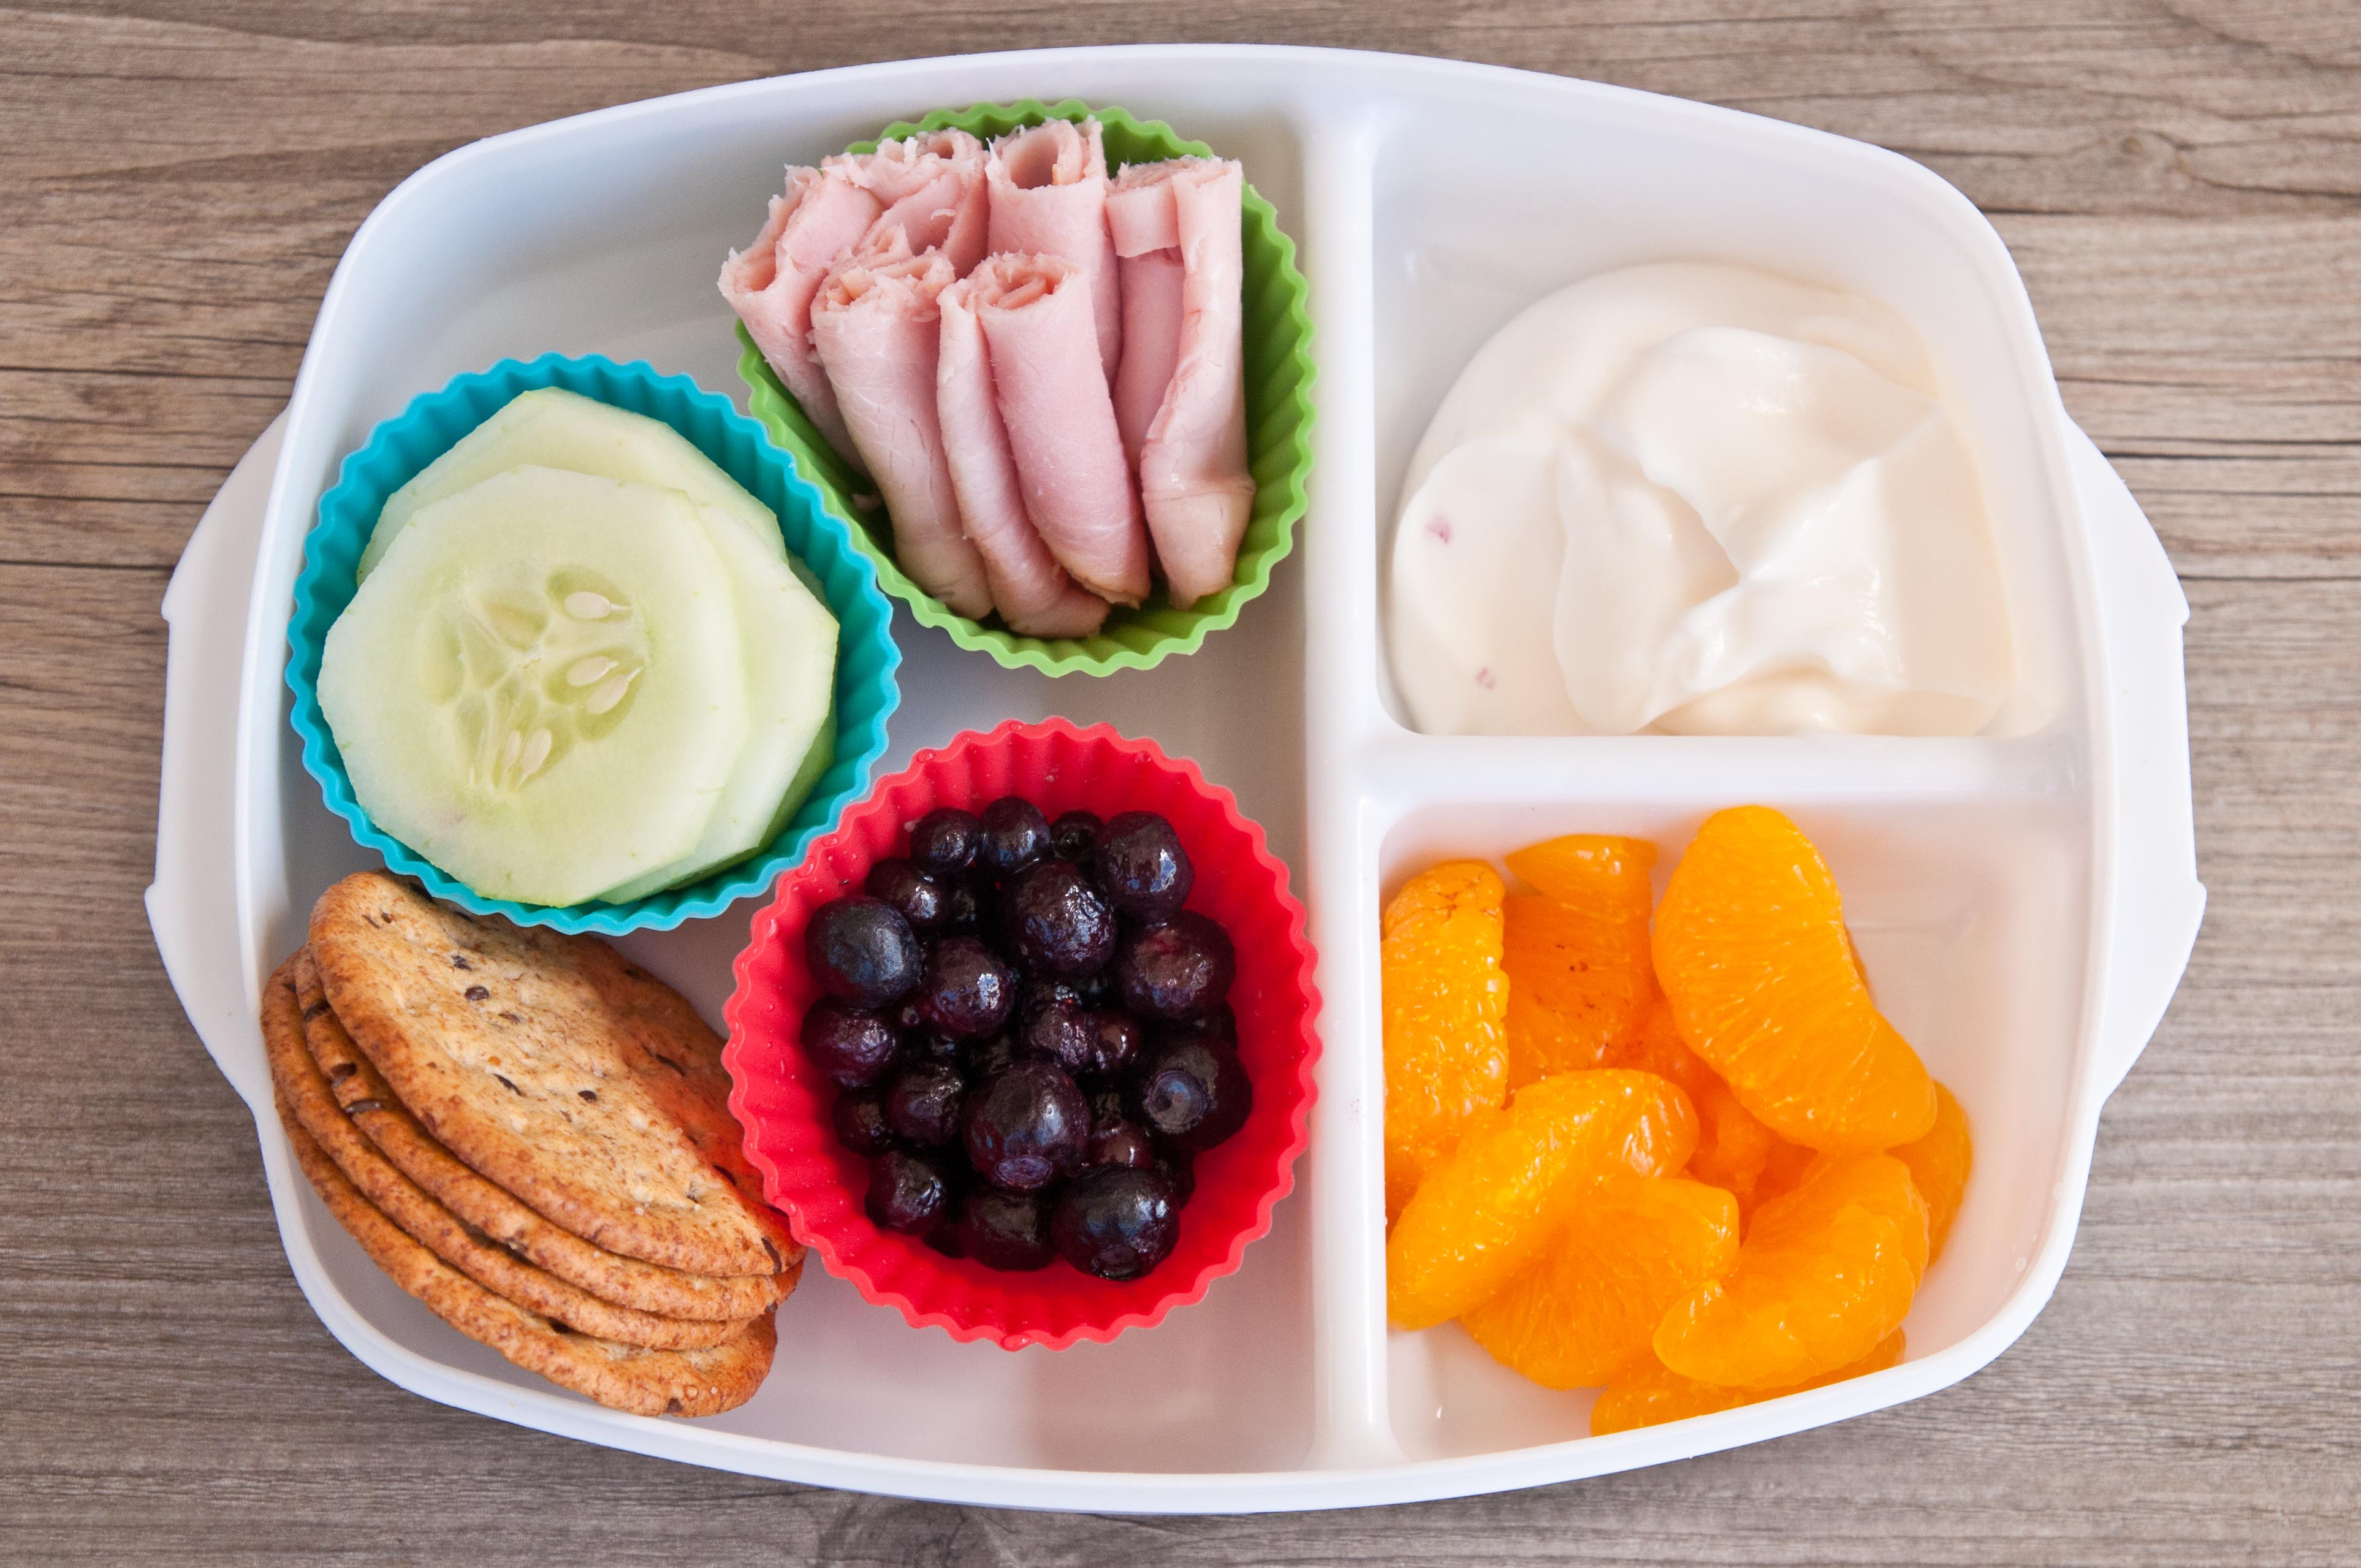 Packing Healthy Lunches  School Lunch Versus Packed Lunch Interesting Research Tips